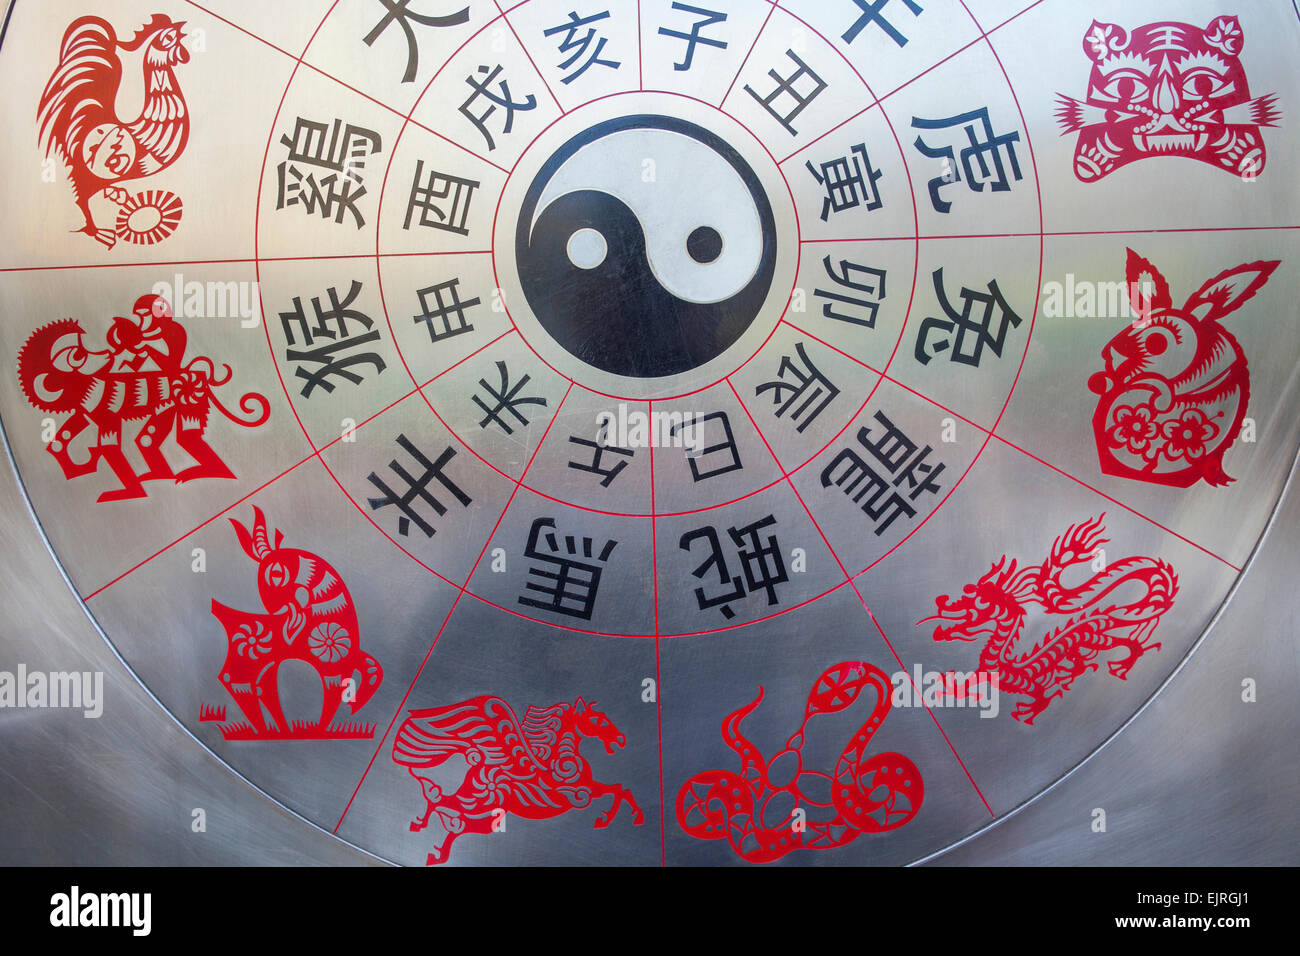 Horoscope birth chart free image collections free any chart examples draconic astrology chart free image collections free any chart free chinese horoscope birth chart choice image nvjuhfo Choice Image